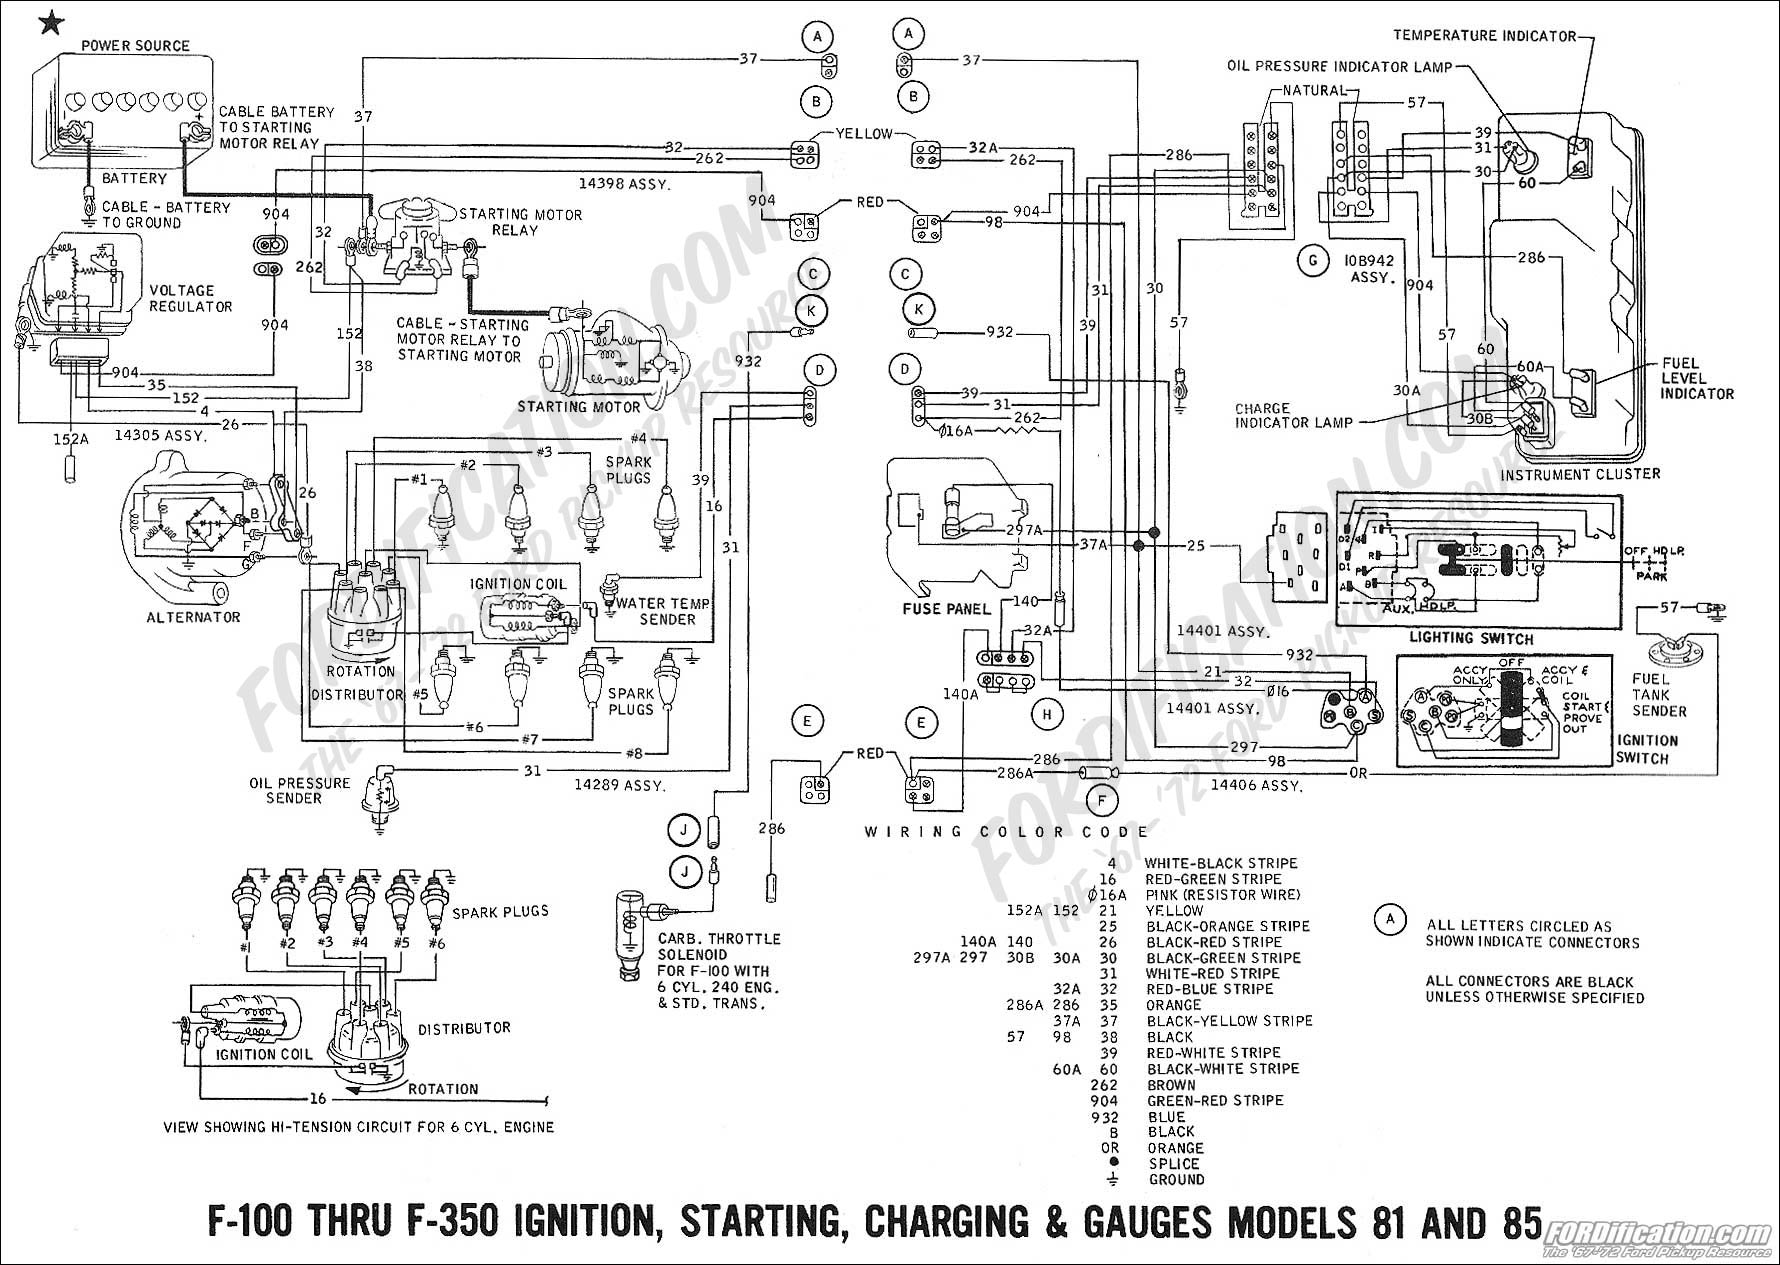 67 Ford Fairlane Wiring Diagram For You All Srt 4 Alternator Wire Diagrams 1967 Detailed Schematics Rh Drphilipharris Com Ignition Switch